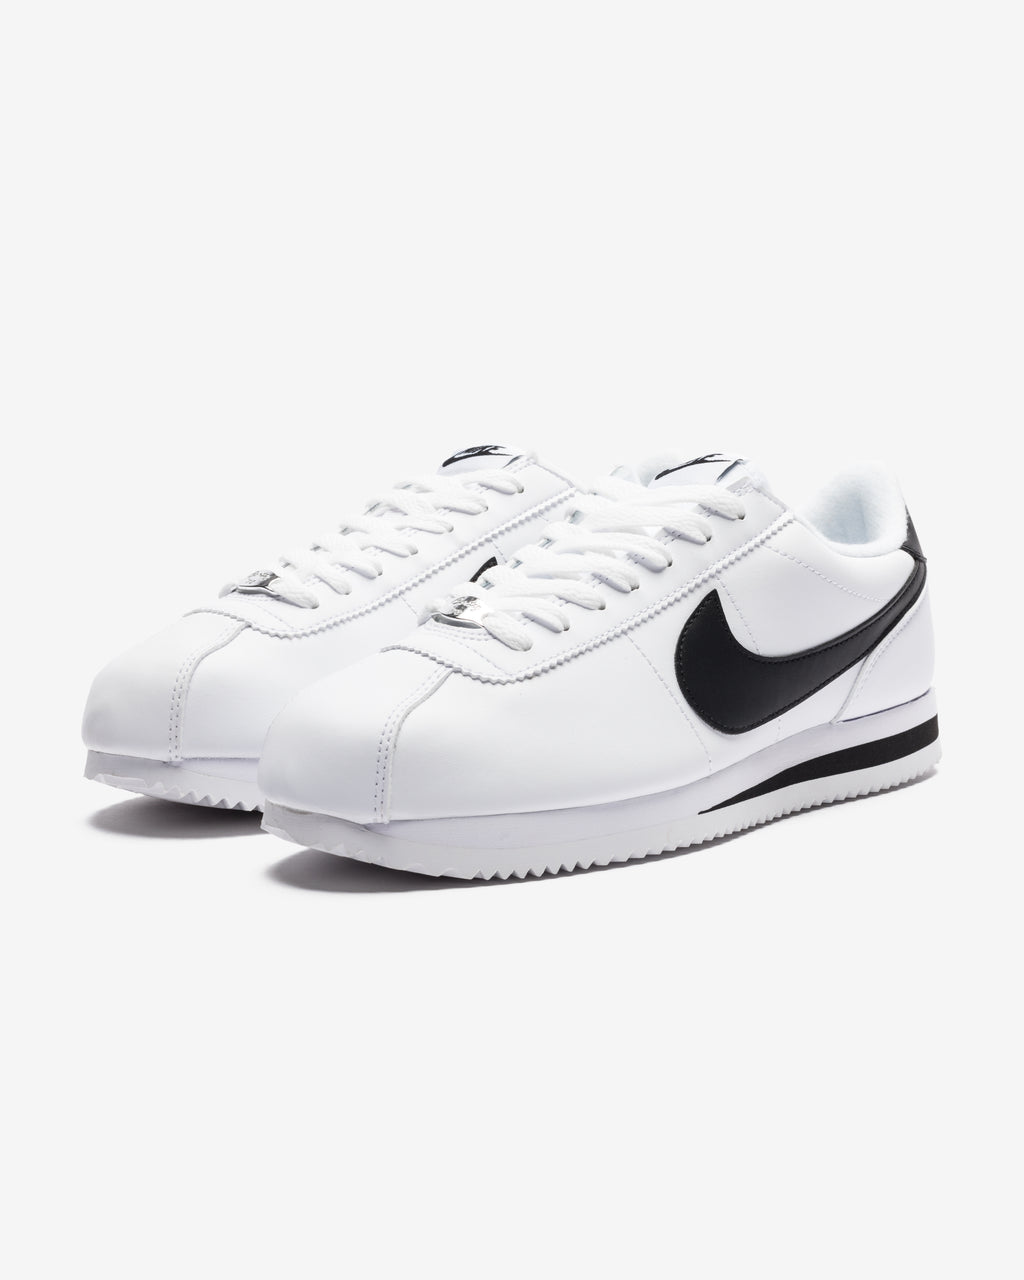 CORTEZ BASIC - WHITE/ BLACK/ METALLICSILVER